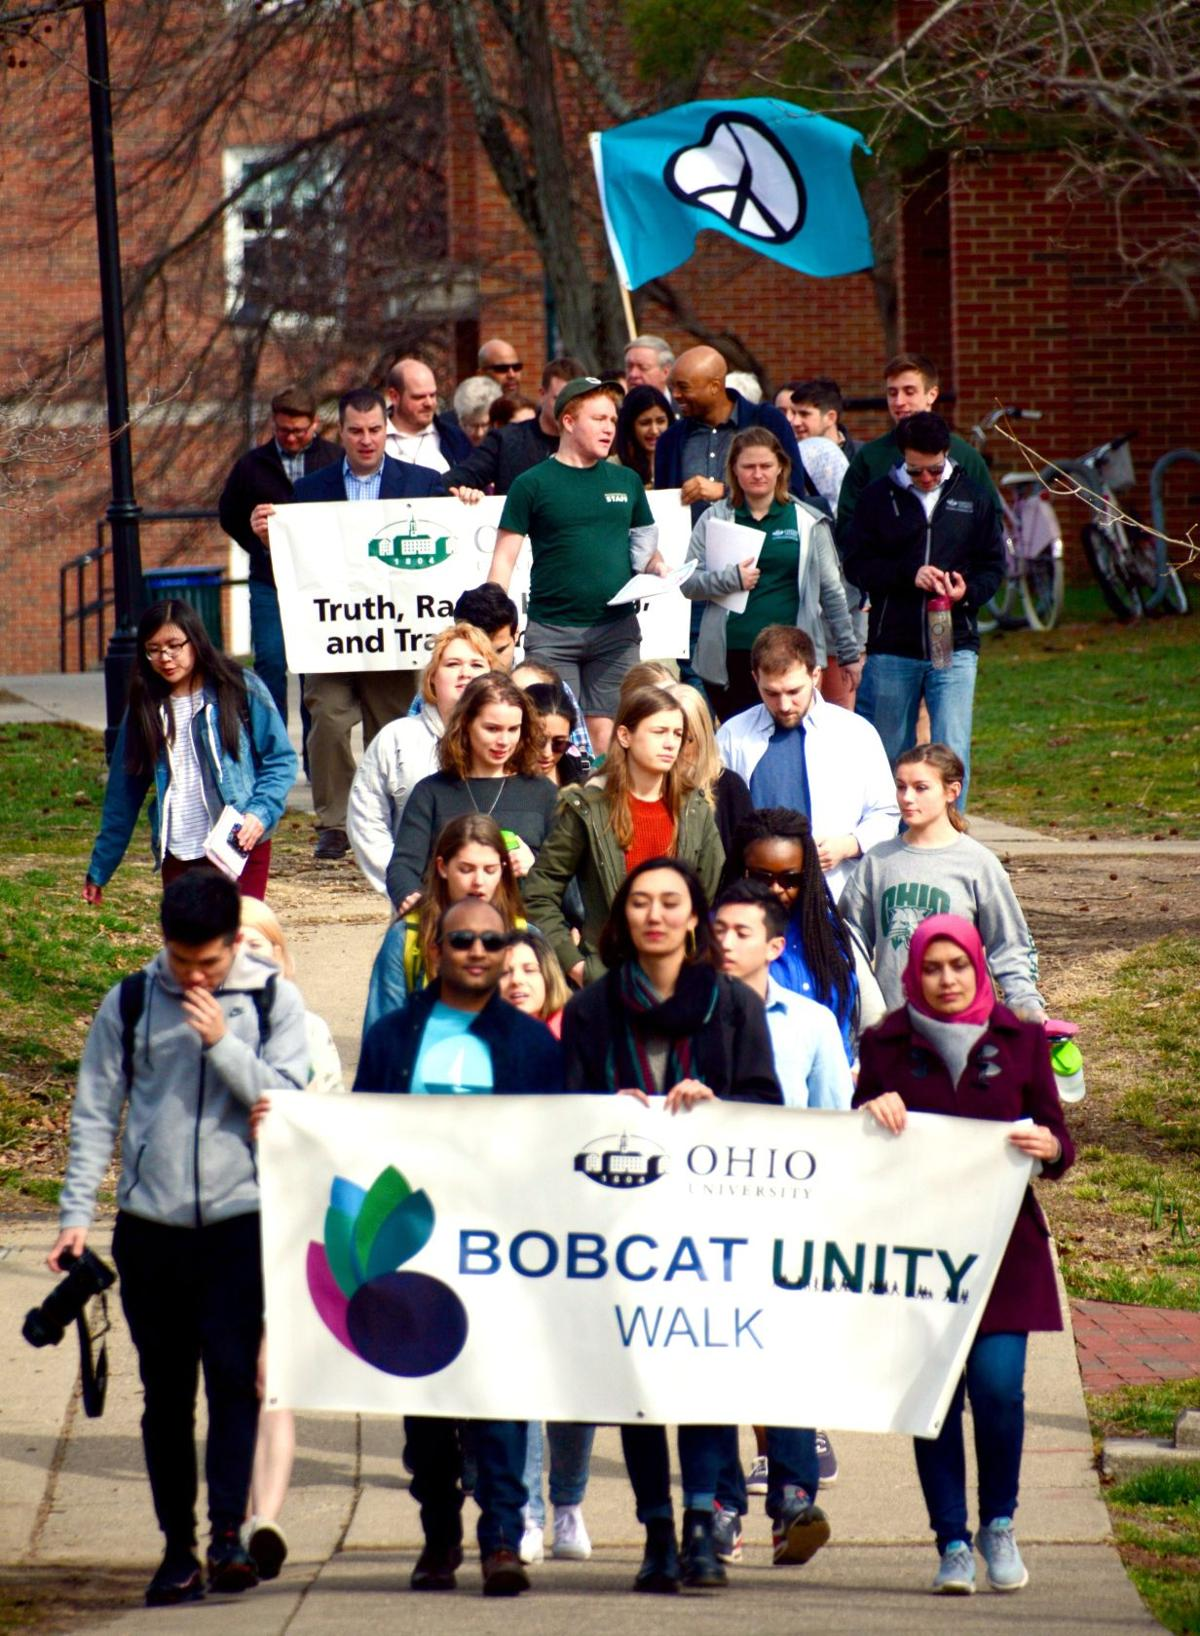 Unity\' walk brings together town & gown communities   Campus News ...